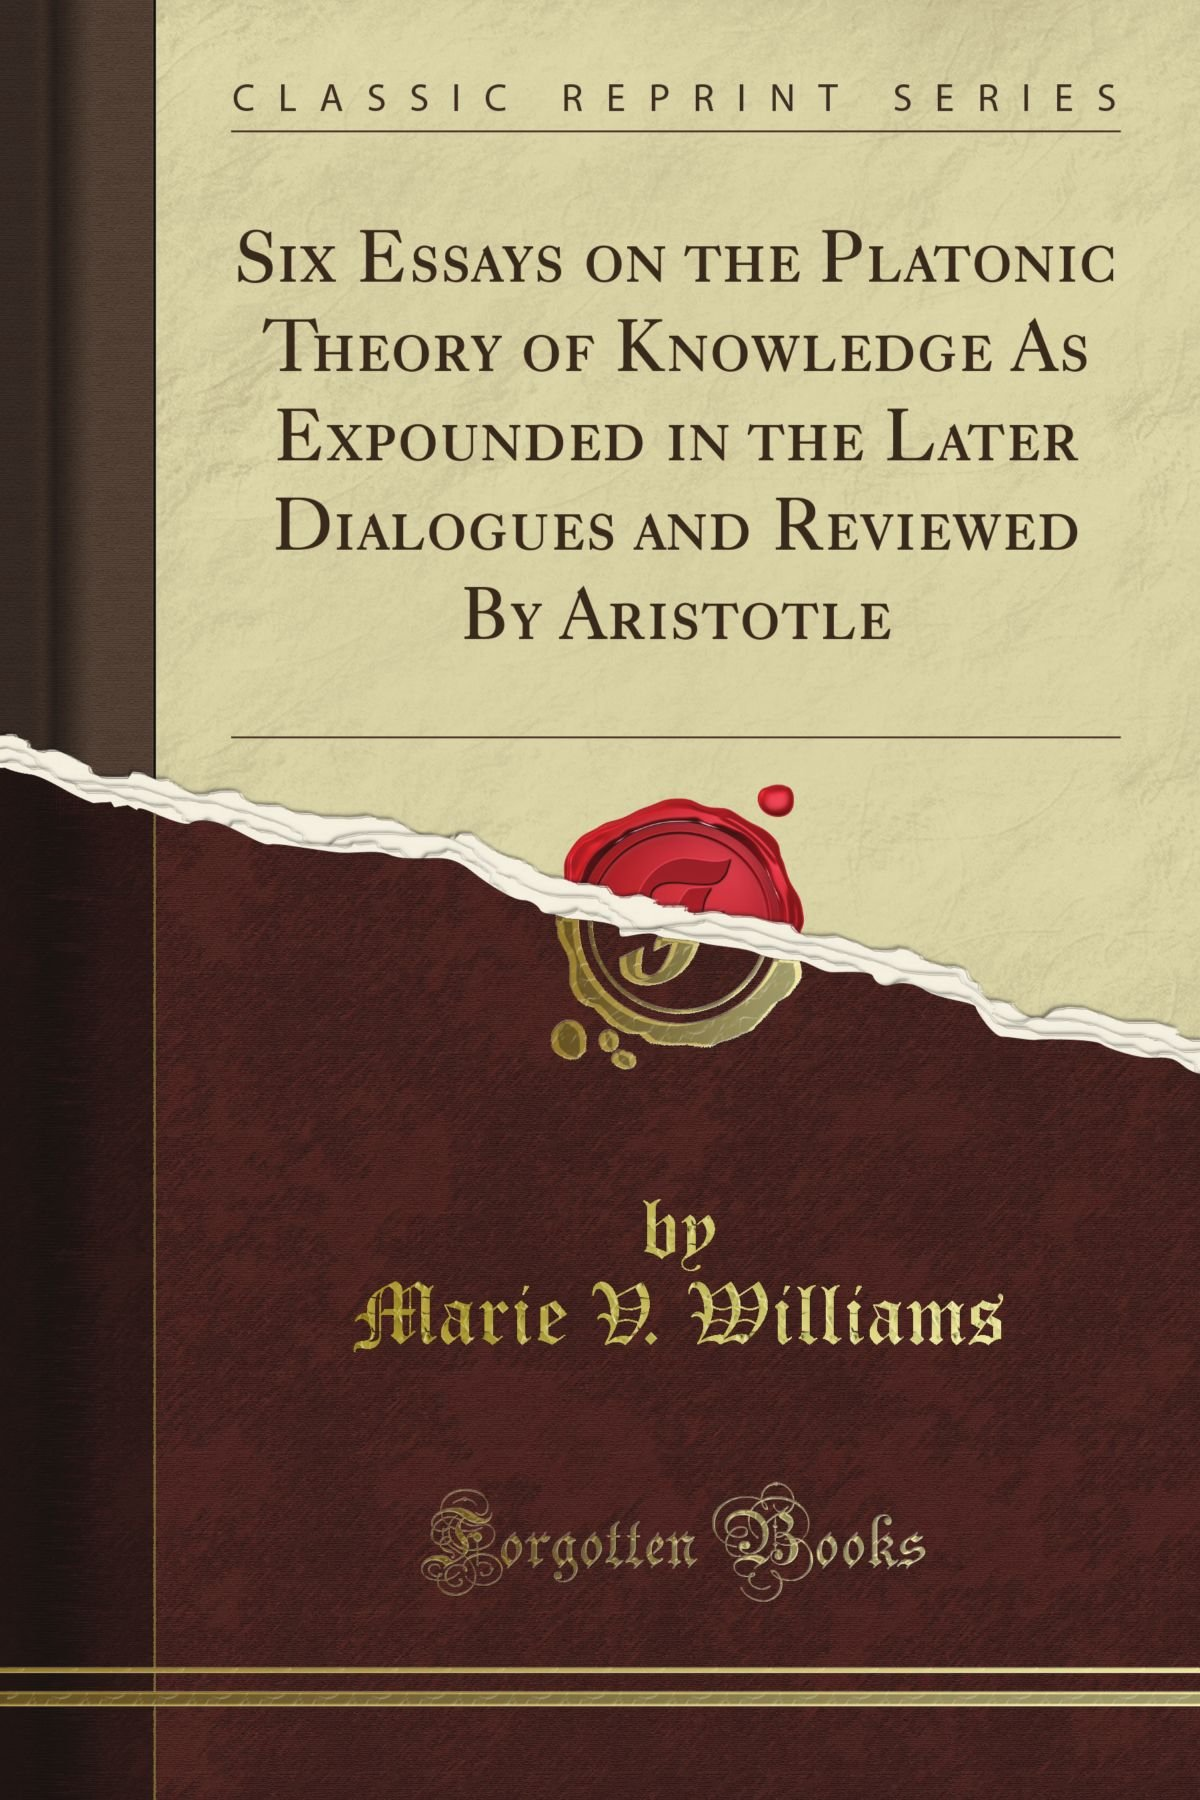 Six Essays on the Platonic Theory of Knowledge As Expounded in the Later Dialogues and Reviewed By Aristotle (Classic Reprint) pdf